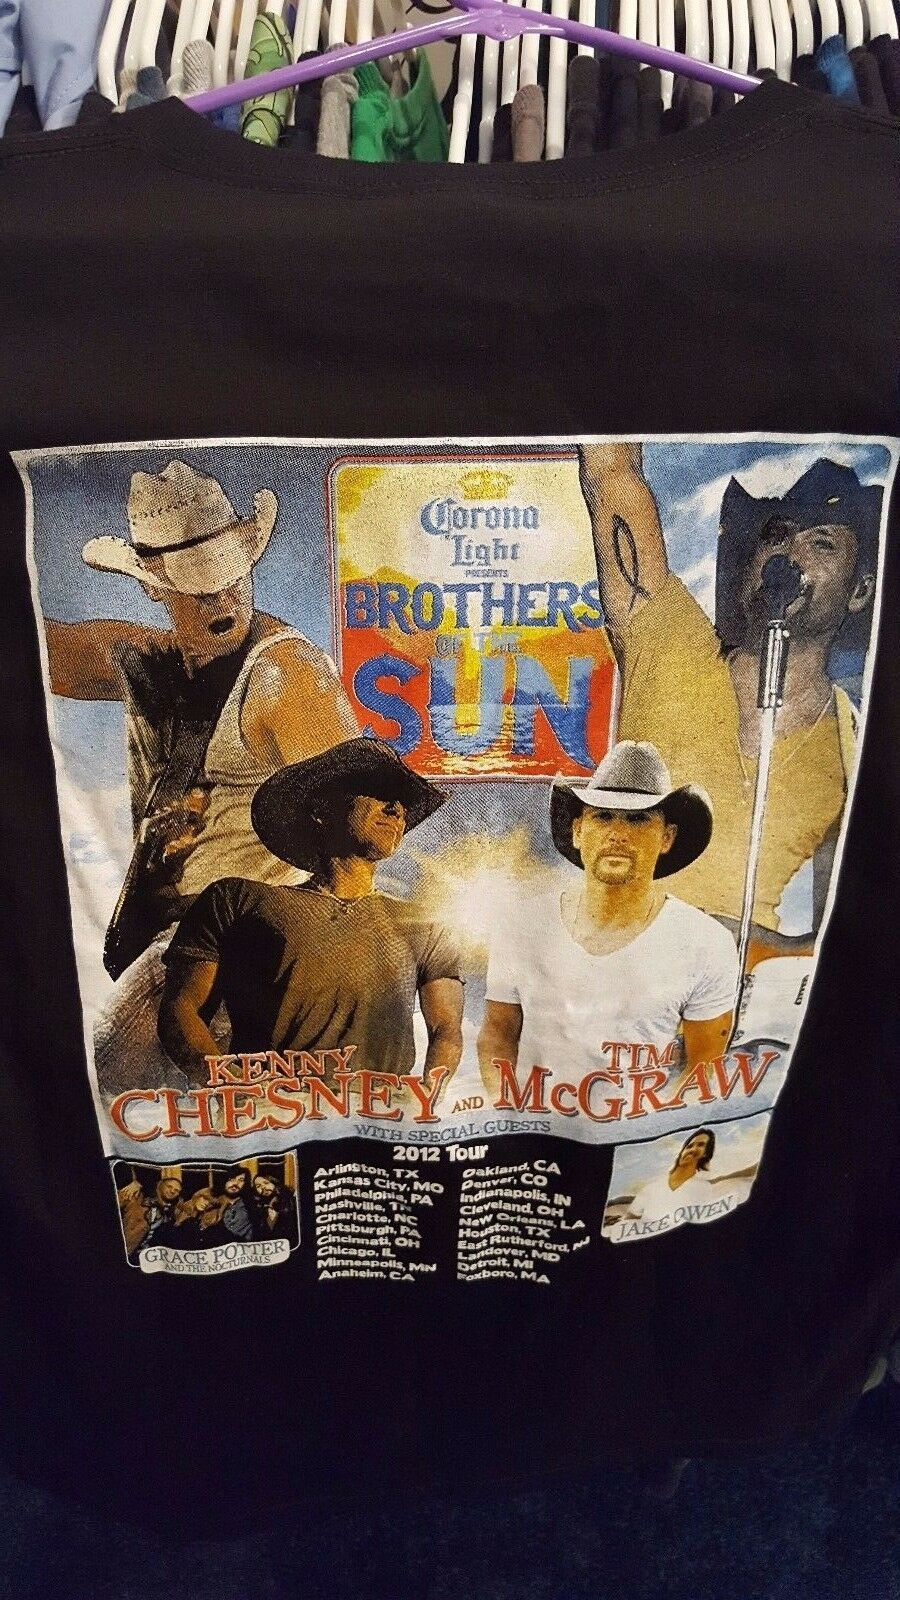 Primary image for KENNY CHESNEY TIM MCGRAW Brothers of the Sun concert tour shirt 2012 size L BEER